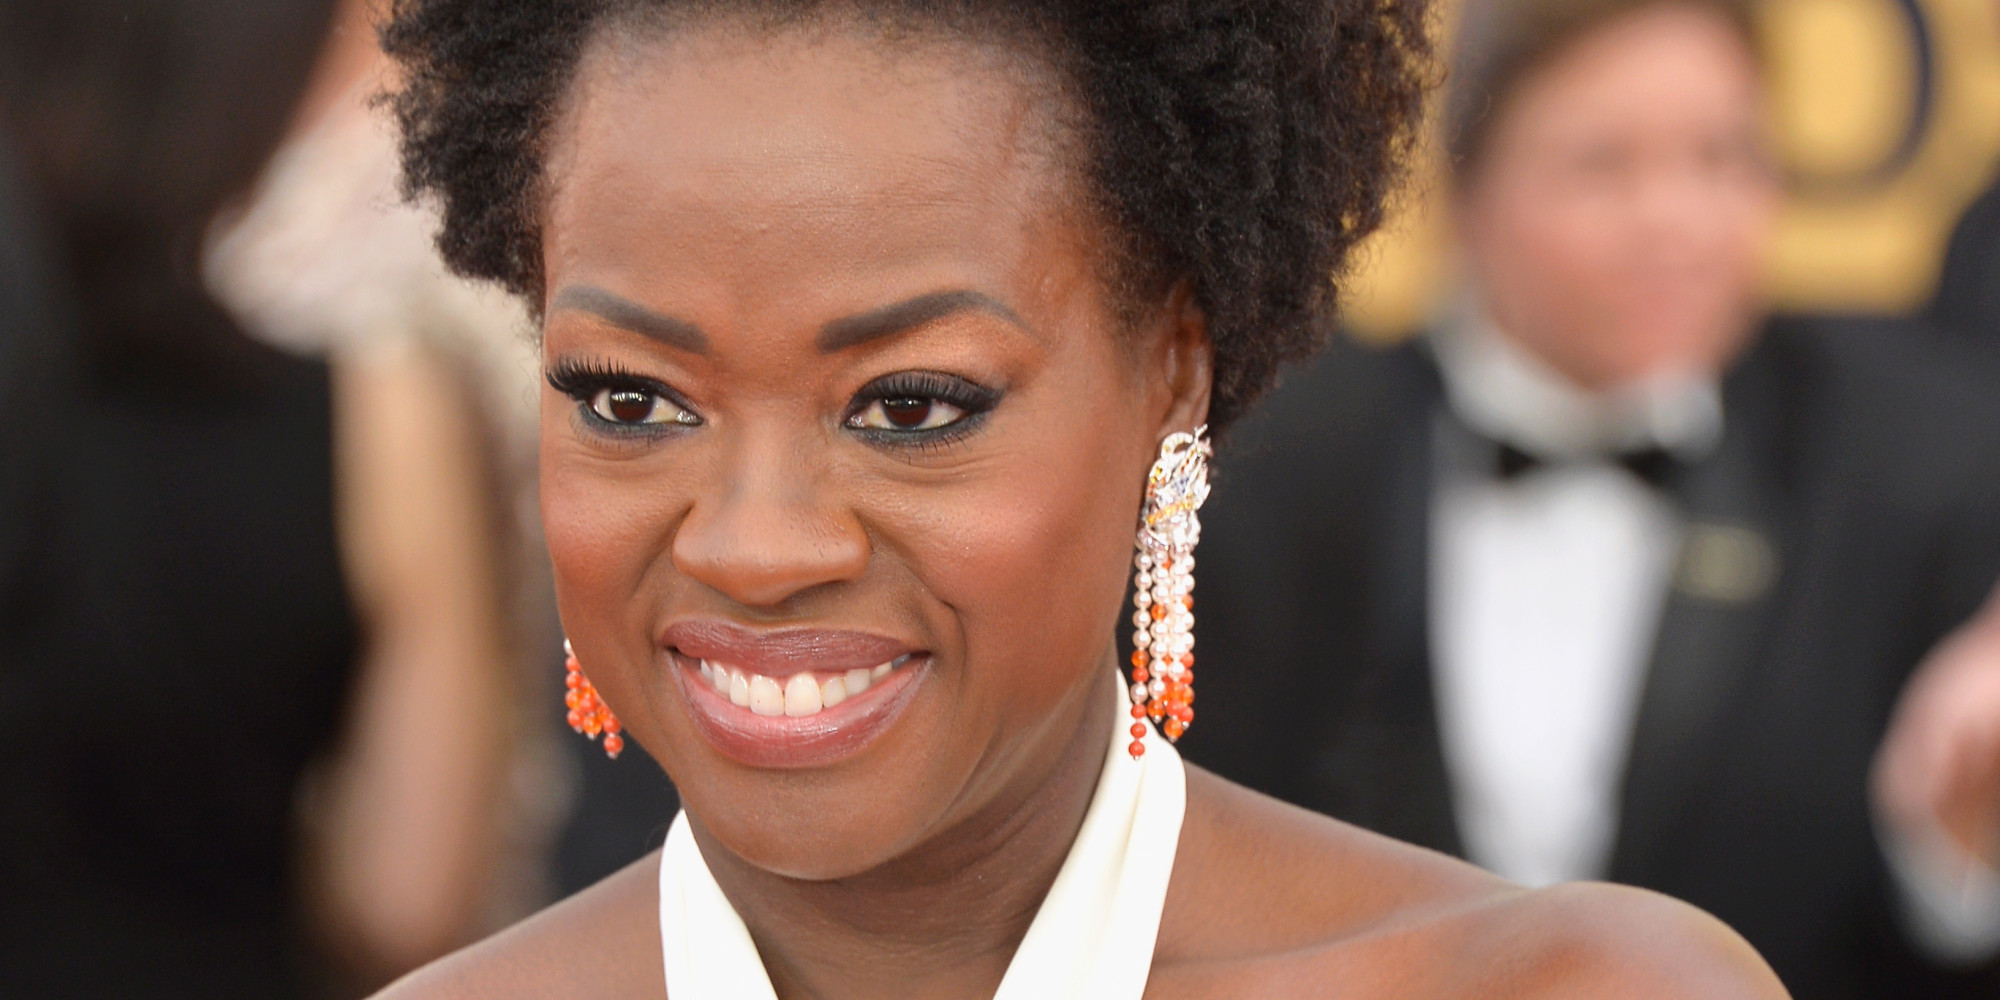 The 2015 SAG Awards red carpet was filled with stunning looks, but Viola Davis is a contender for best beauty of the night. Dressed in a cus...